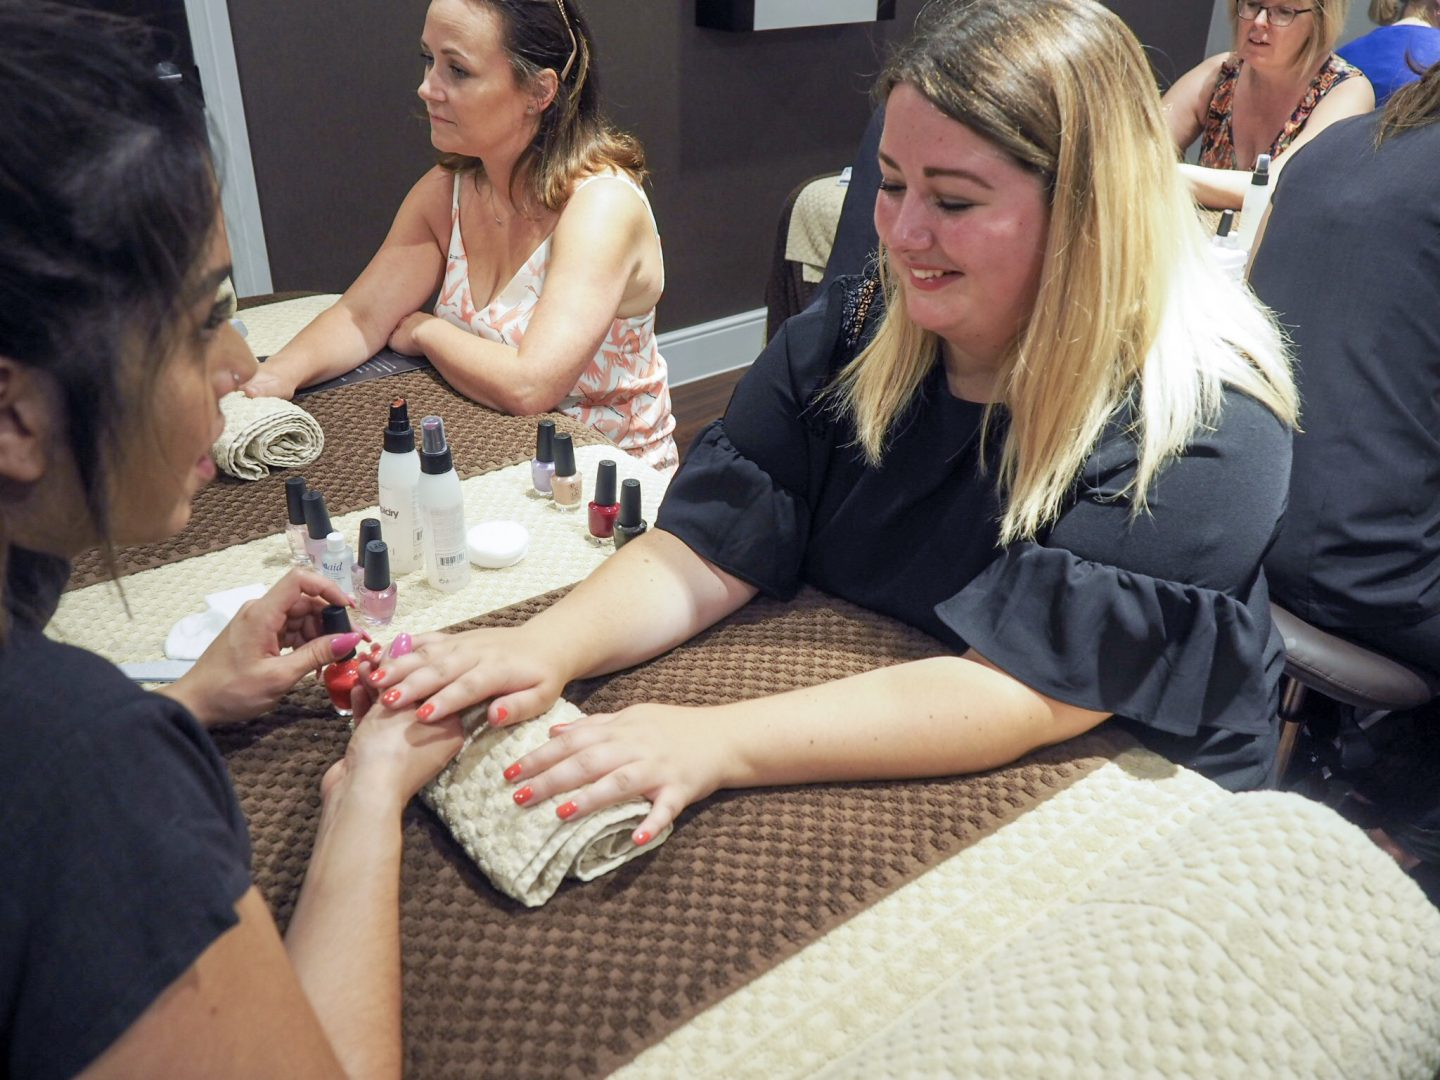 Kingsford Park spa manicures